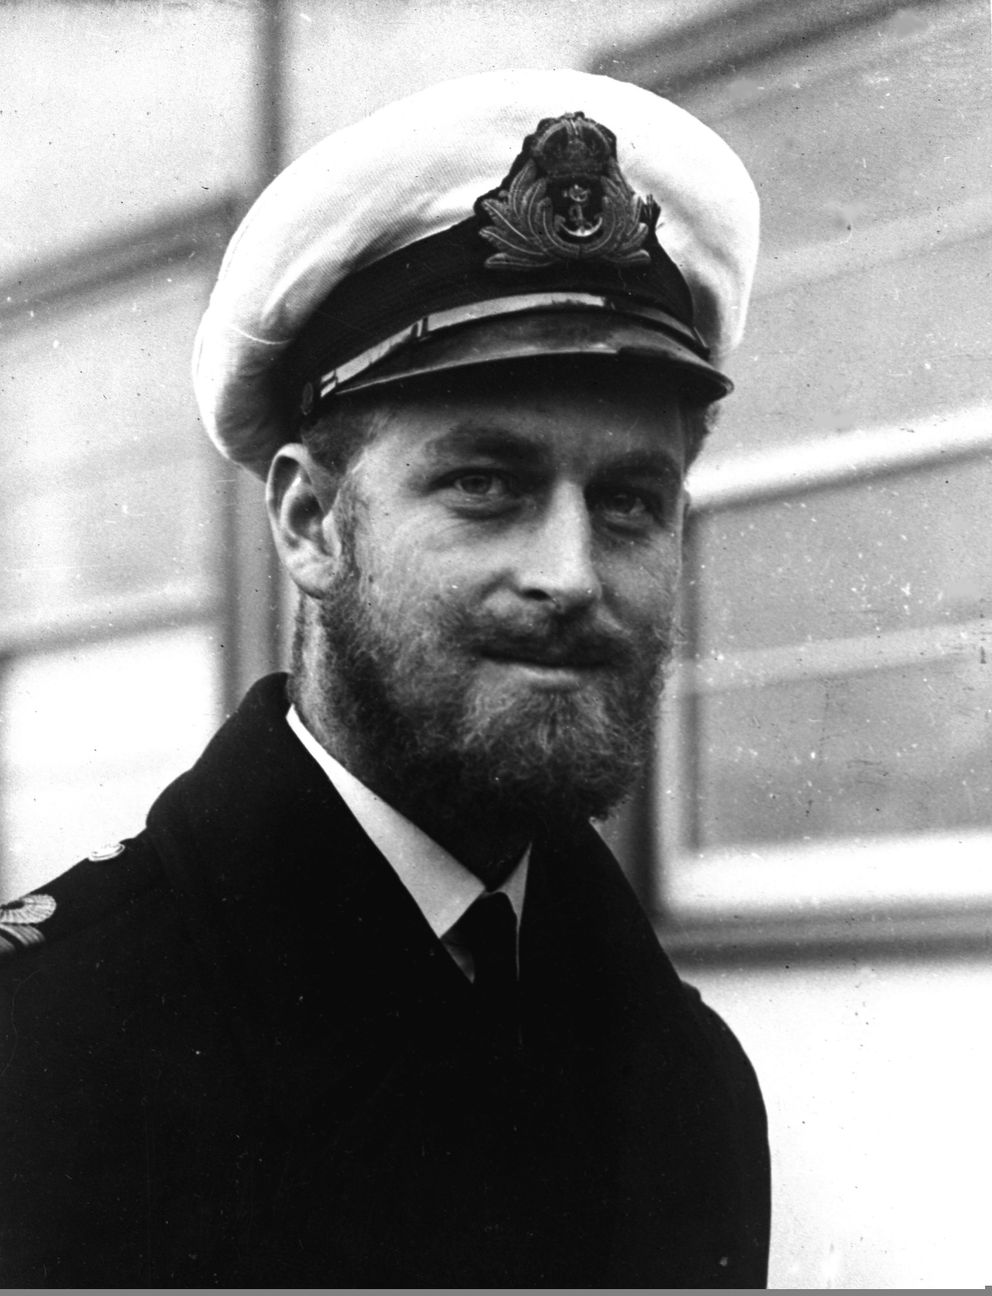 FILE - This Aug. 29, 1945 file photo shows Prince Philip of Greece, during a naval visit to Melbourne, Australia. Buckingham Palace says Prince Philip, husband of Queen Elizabeth II, has died aged 99. (AP Photo/File)